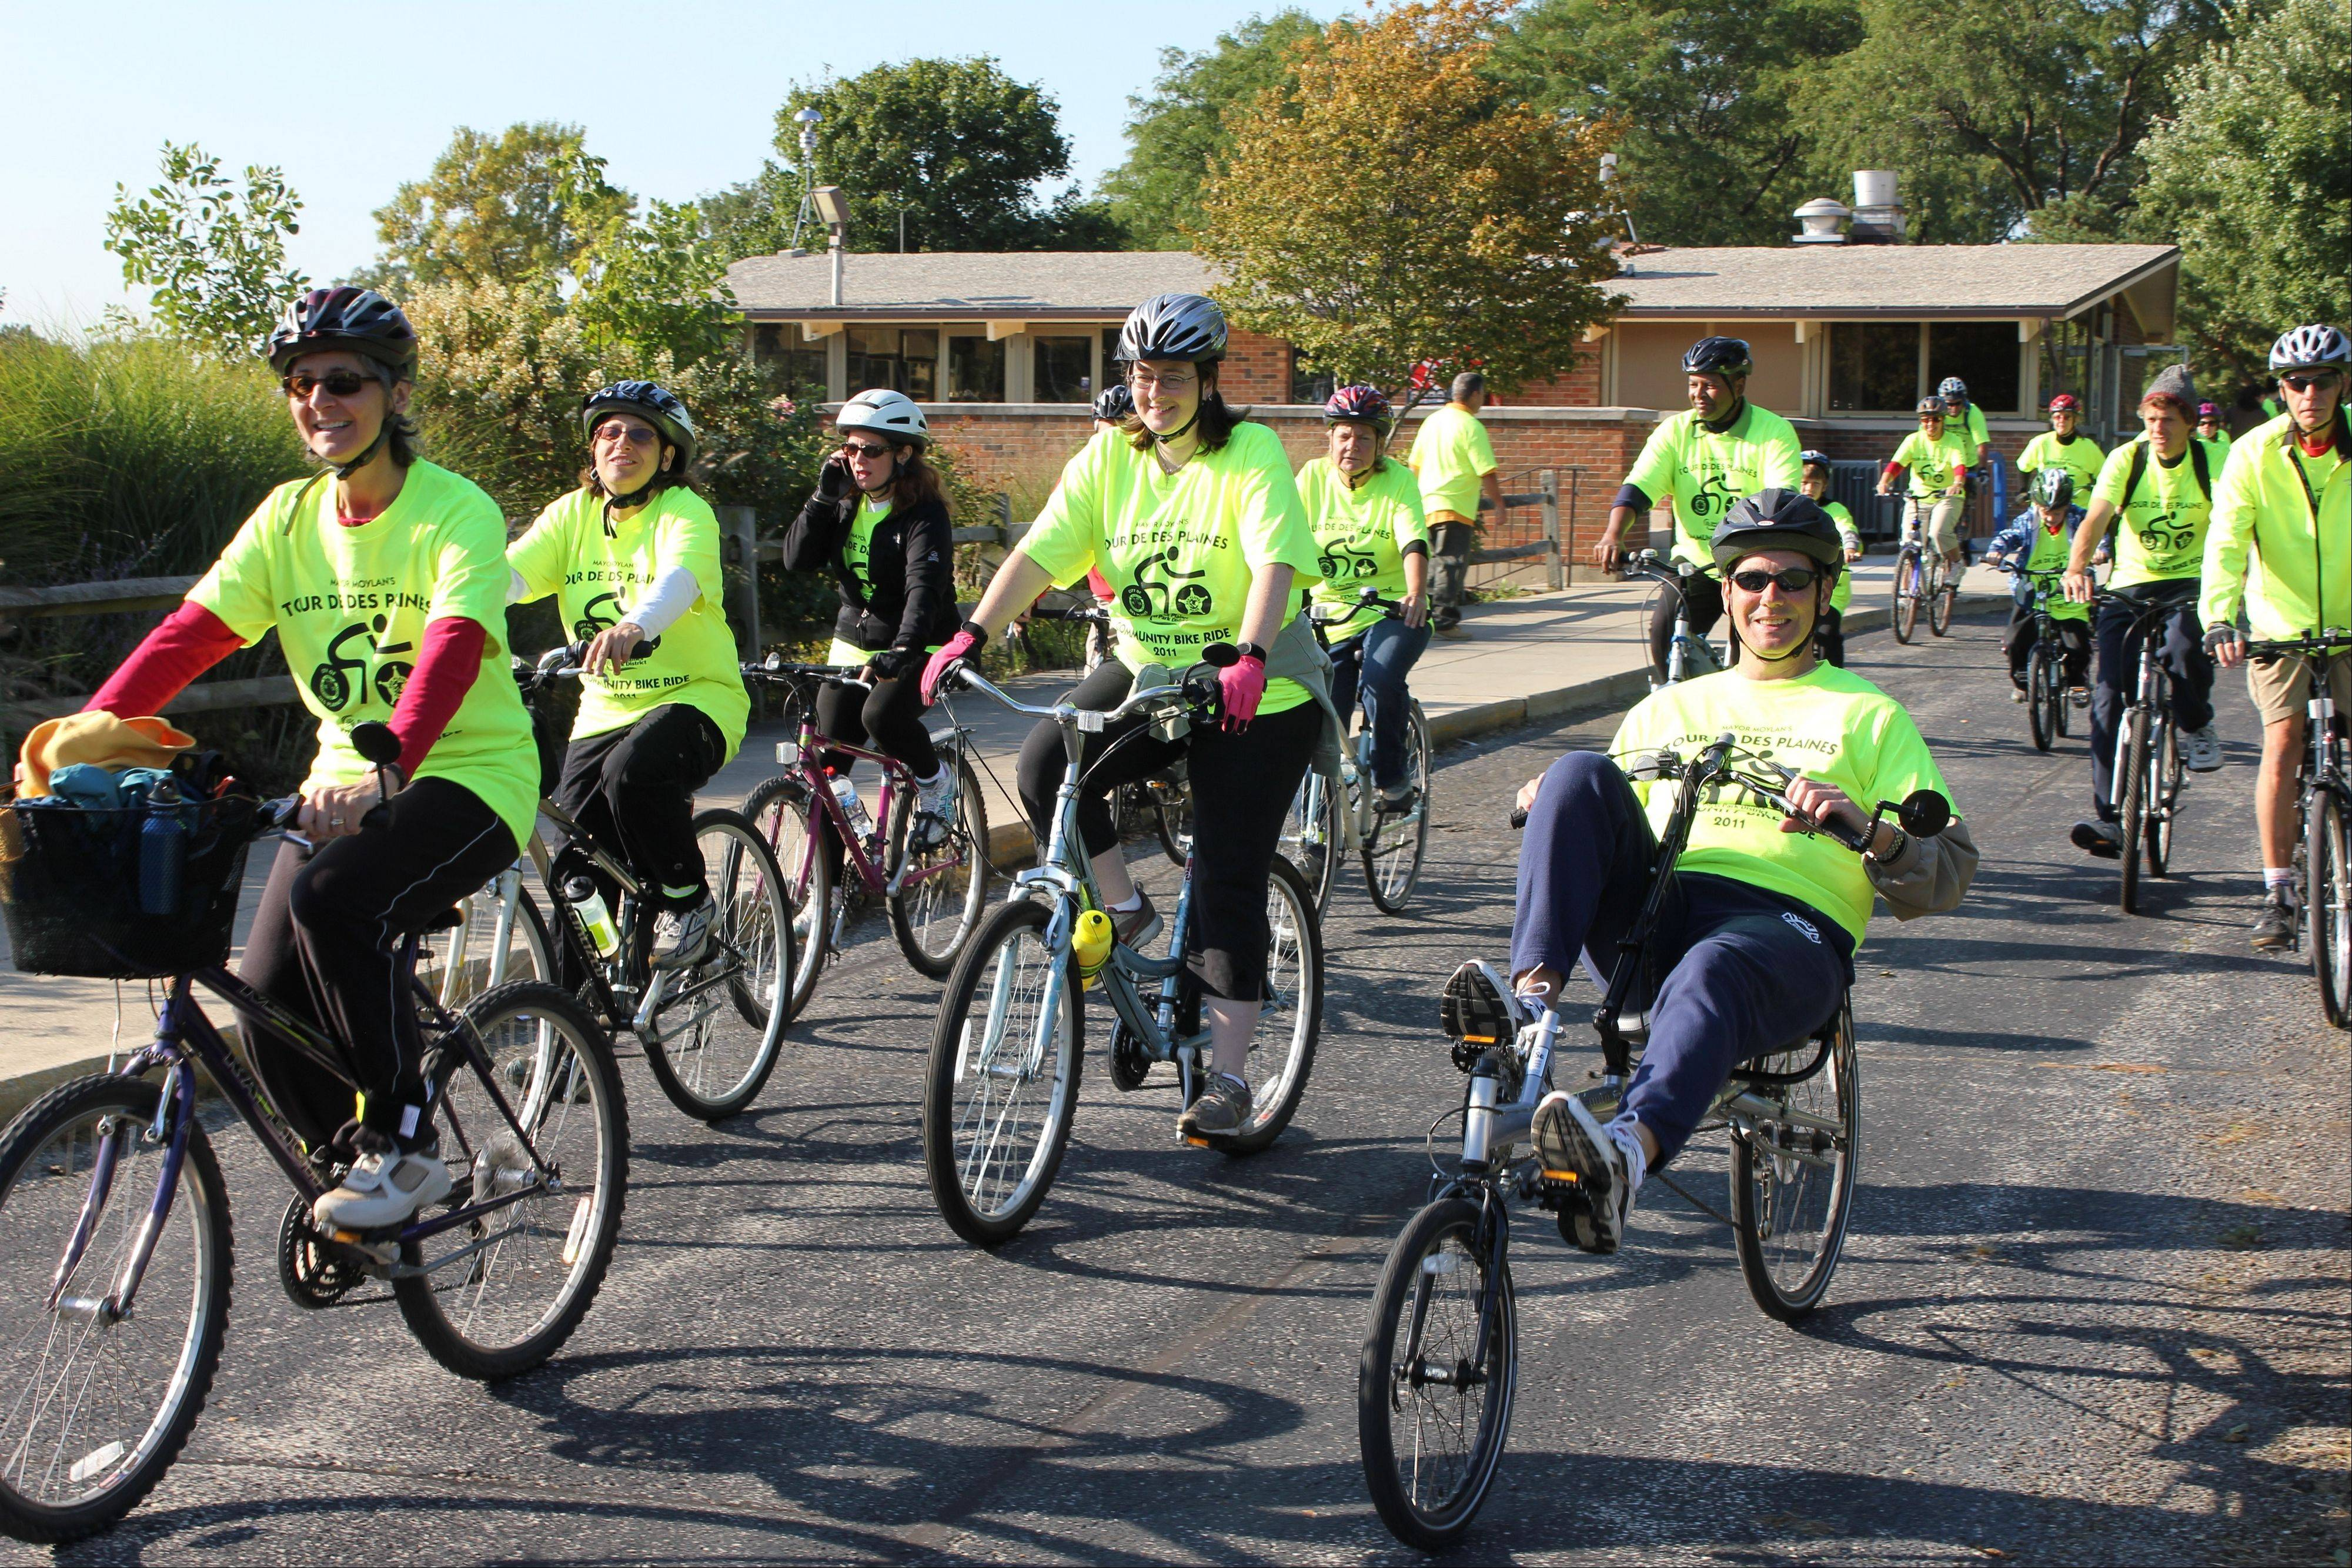 Des Plaines Mayor Martin J. Moylan, the Des Plaines Police Department and the Des Plaines Park District invite all bicycle enthusiasts to participate in the Tour Des Plaines Bike Ride, being held Saturday, Sept. 15.